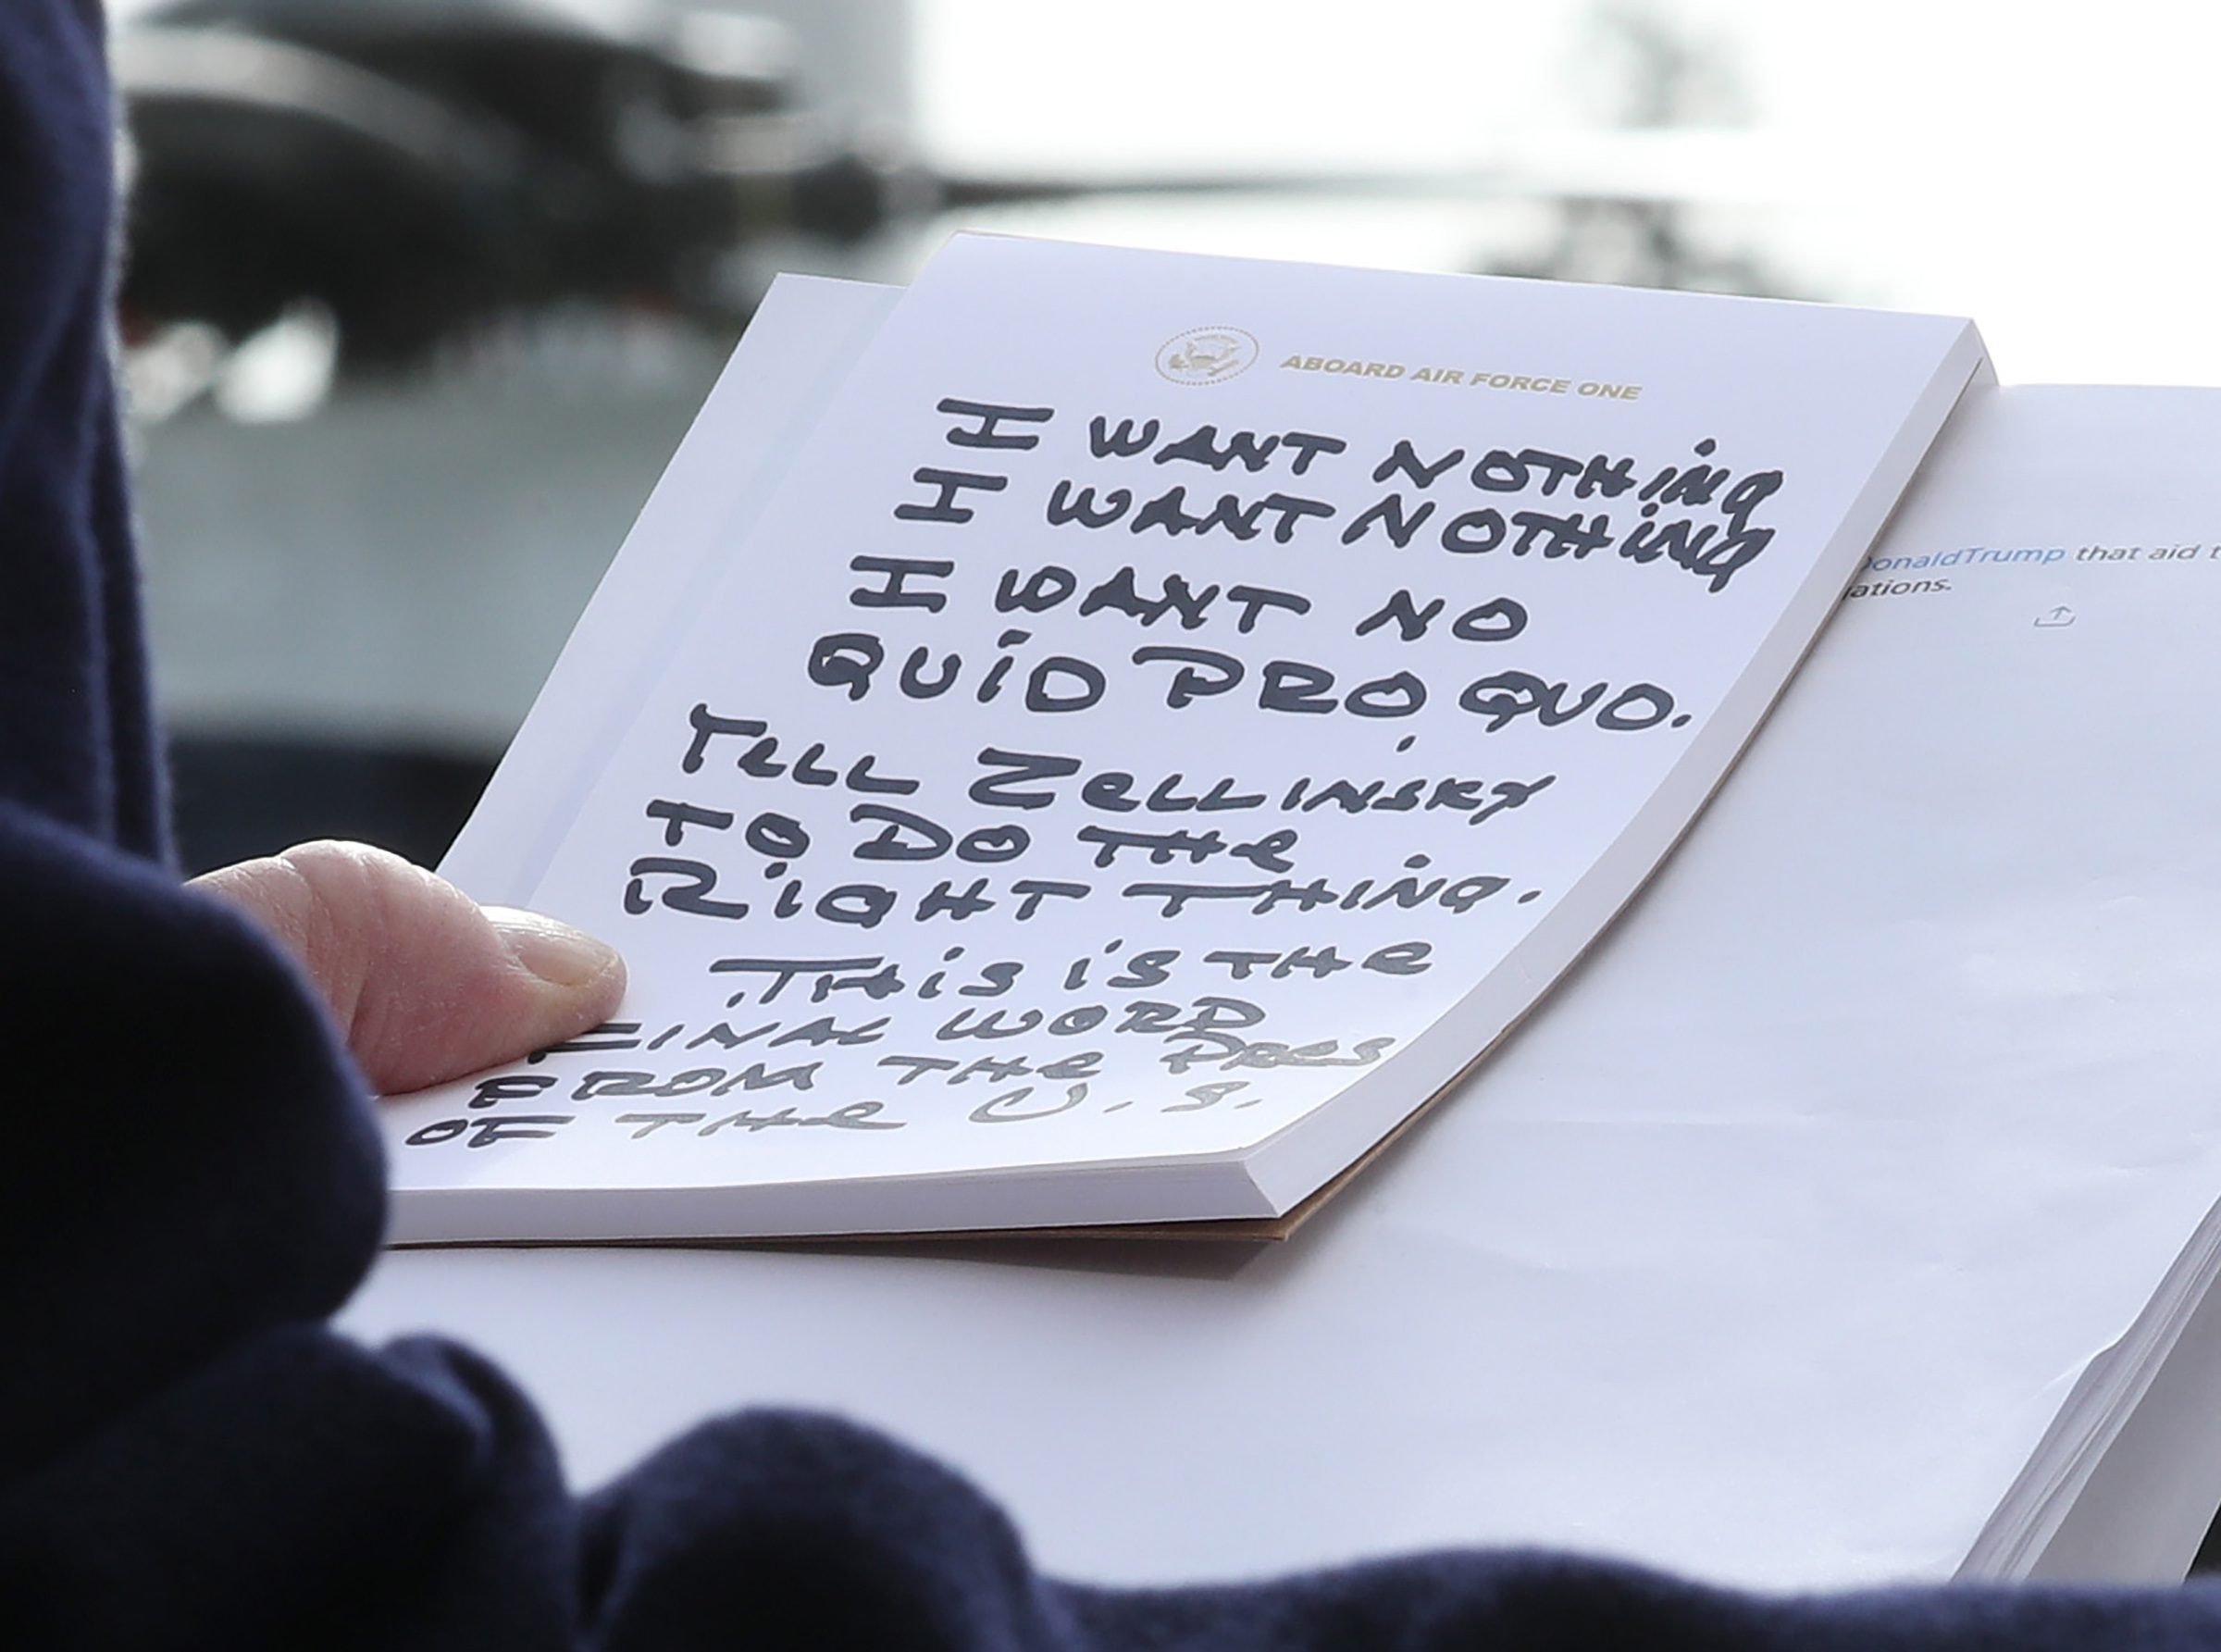 U.S. President Donald Trump holds his notes while speaking to the media before departing from the White House in Washington D.C. on Nov. 20, 2019.